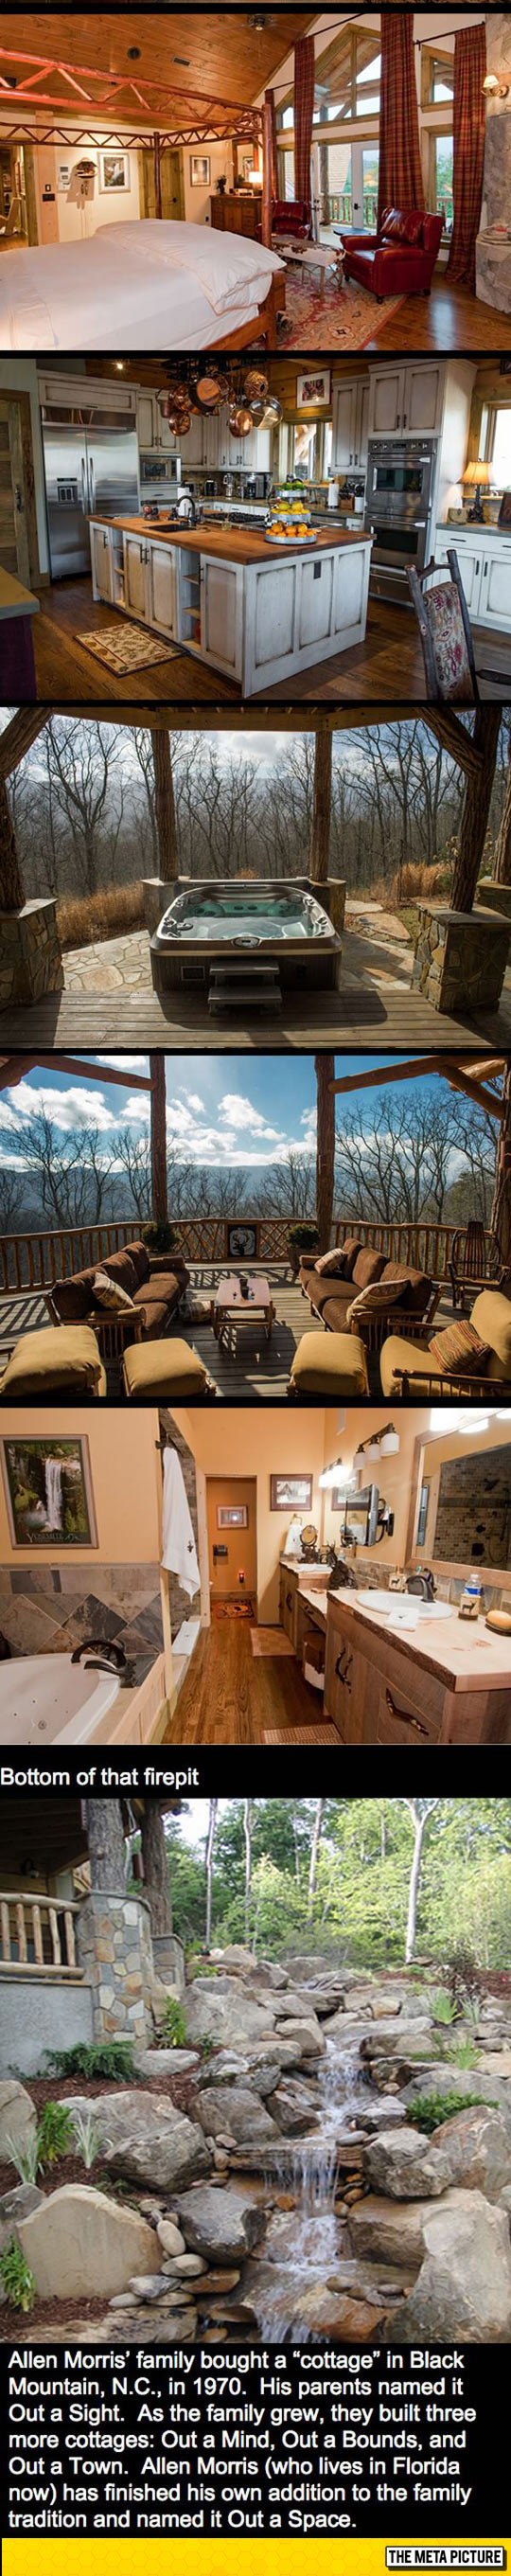 2funny-cabin-log-fire-pit-forest-deck